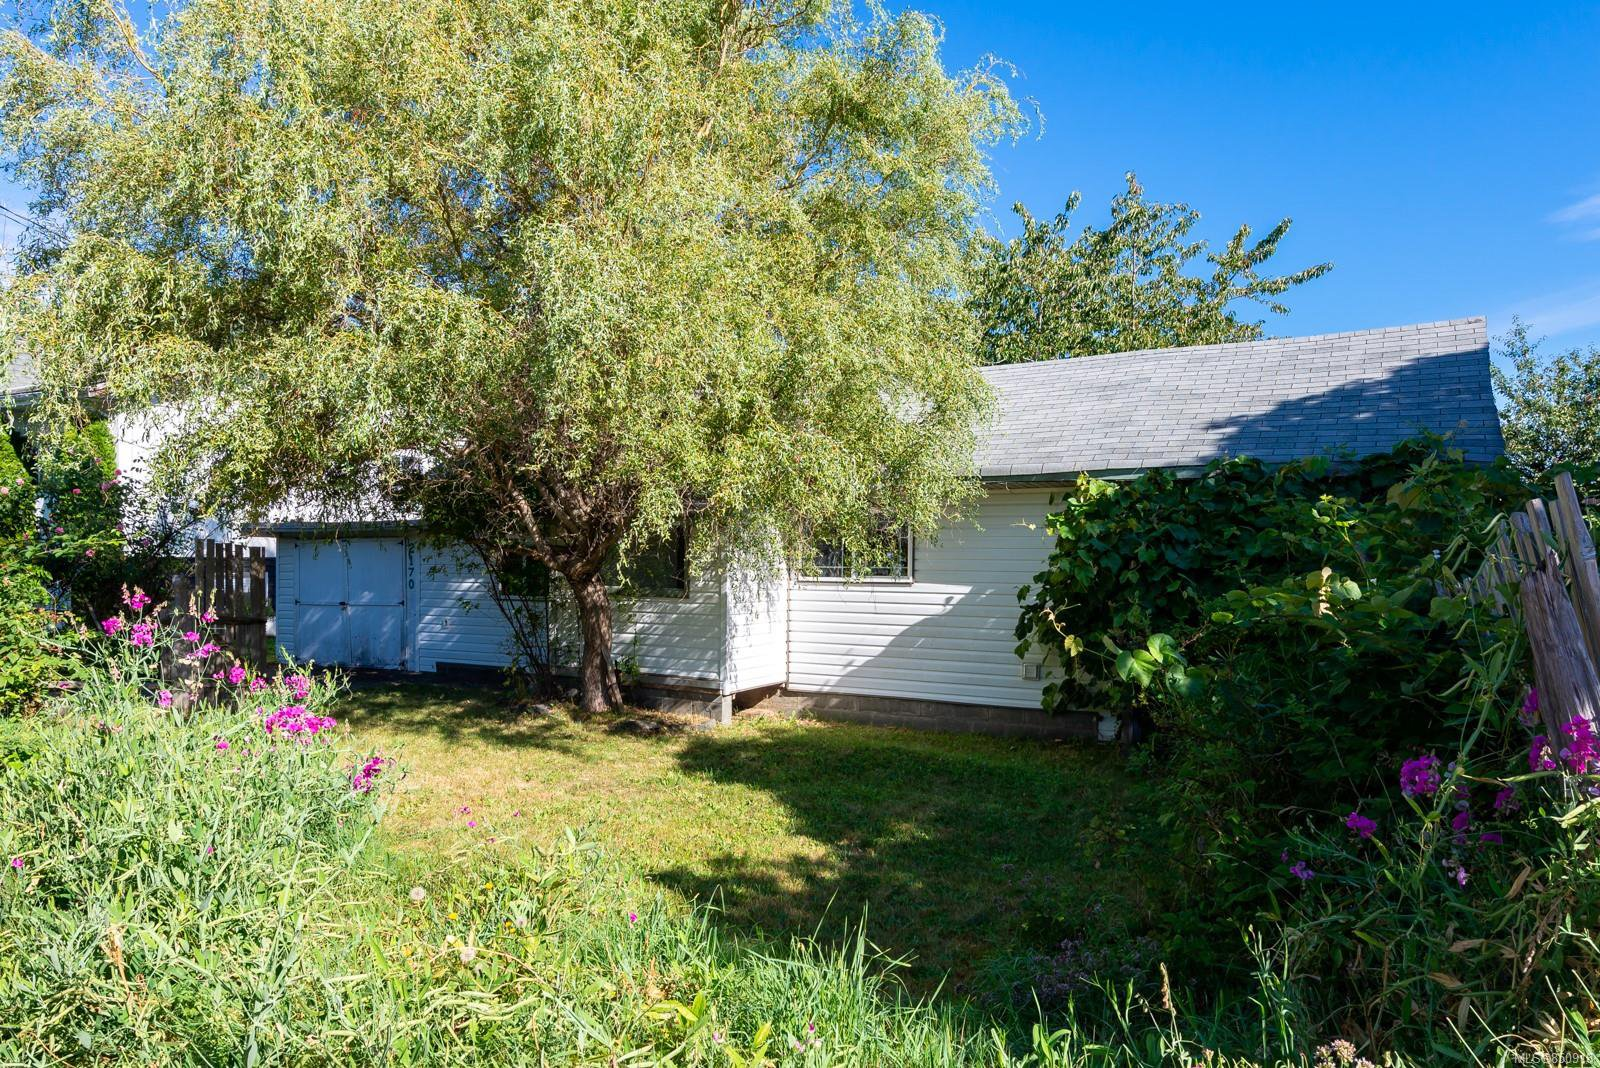 Main Photo: 2170 15th Ave in : CR Campbellton House for sale (Campbell River)  : MLS®# 850918